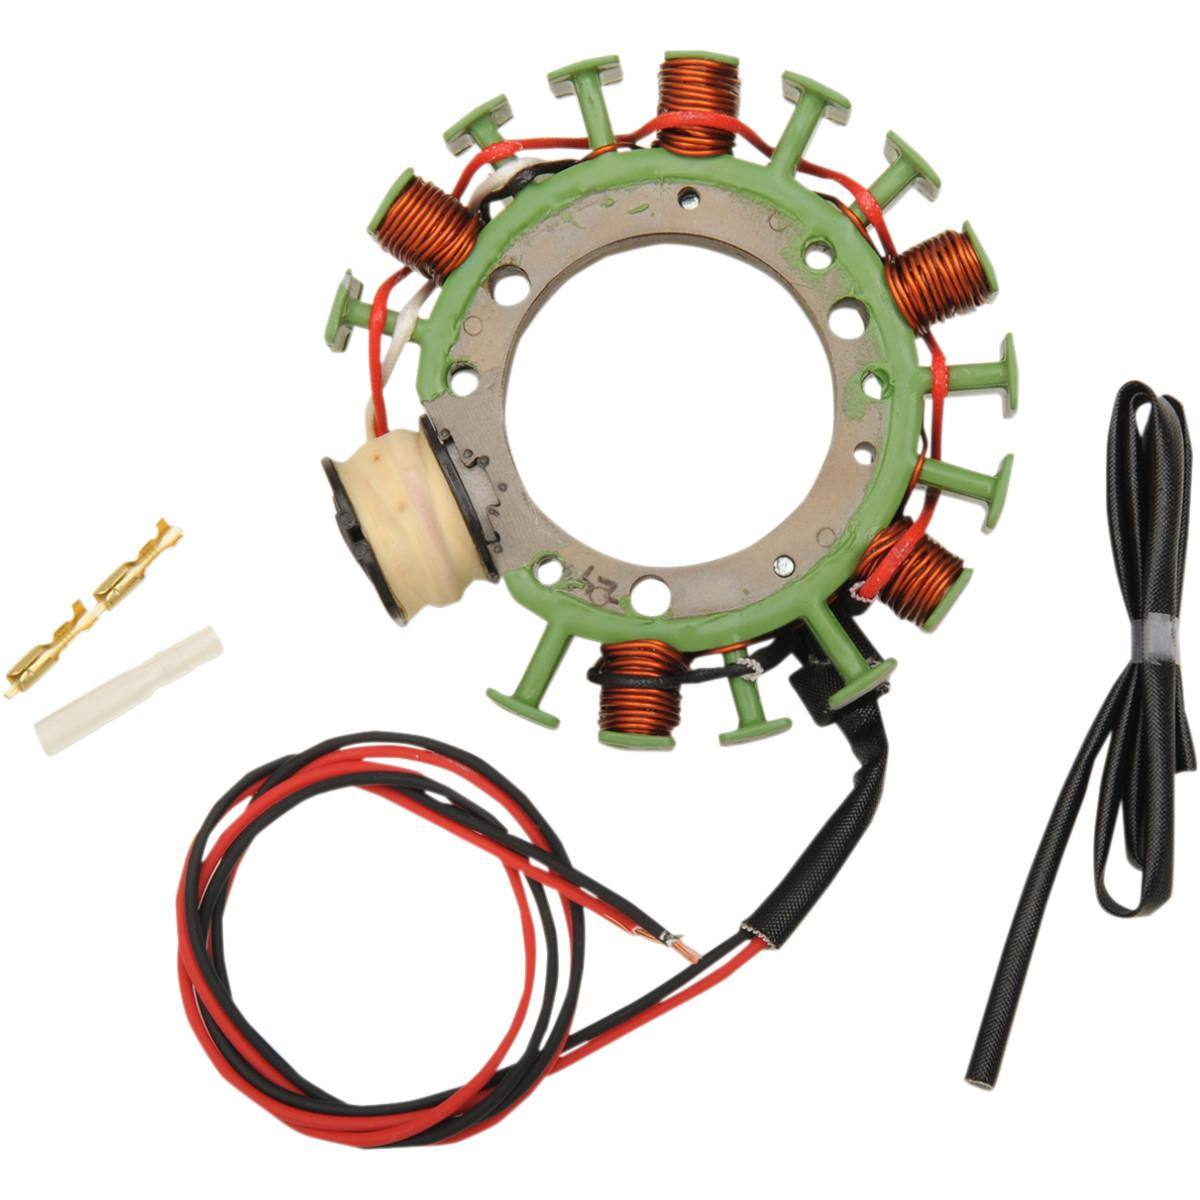 Stator For Sale In San Clemente Ca Sc Rider Supply 949 388 0521 03 Yamaha Ttr 225 Wiring